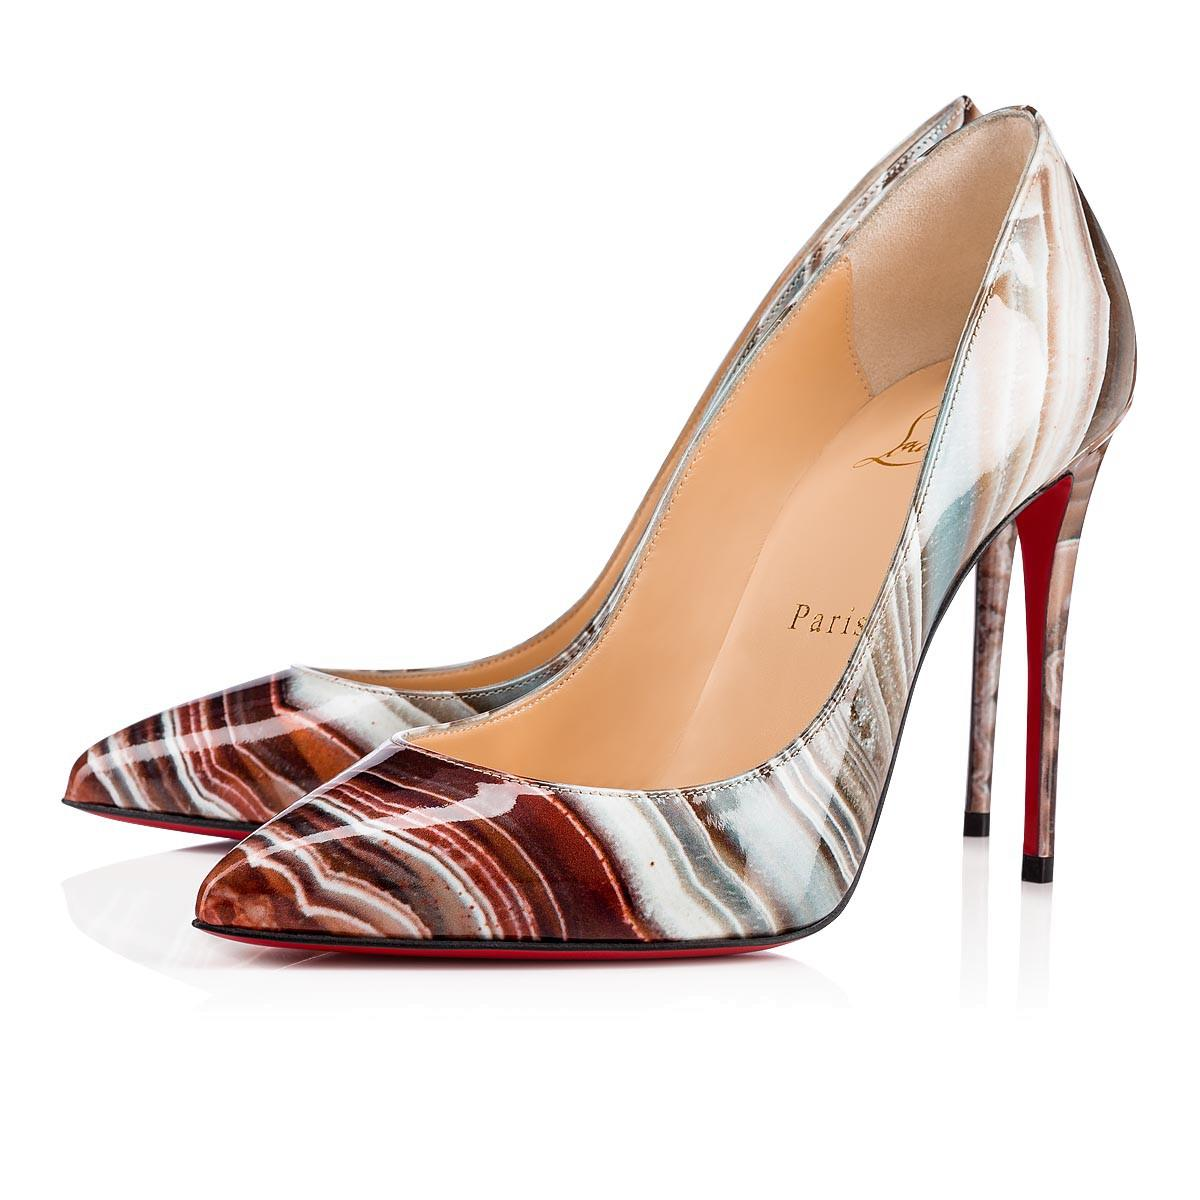 55ef64fd30d Christian Louboutin Pigalle Follies Patent Agathe In Multicolor ...